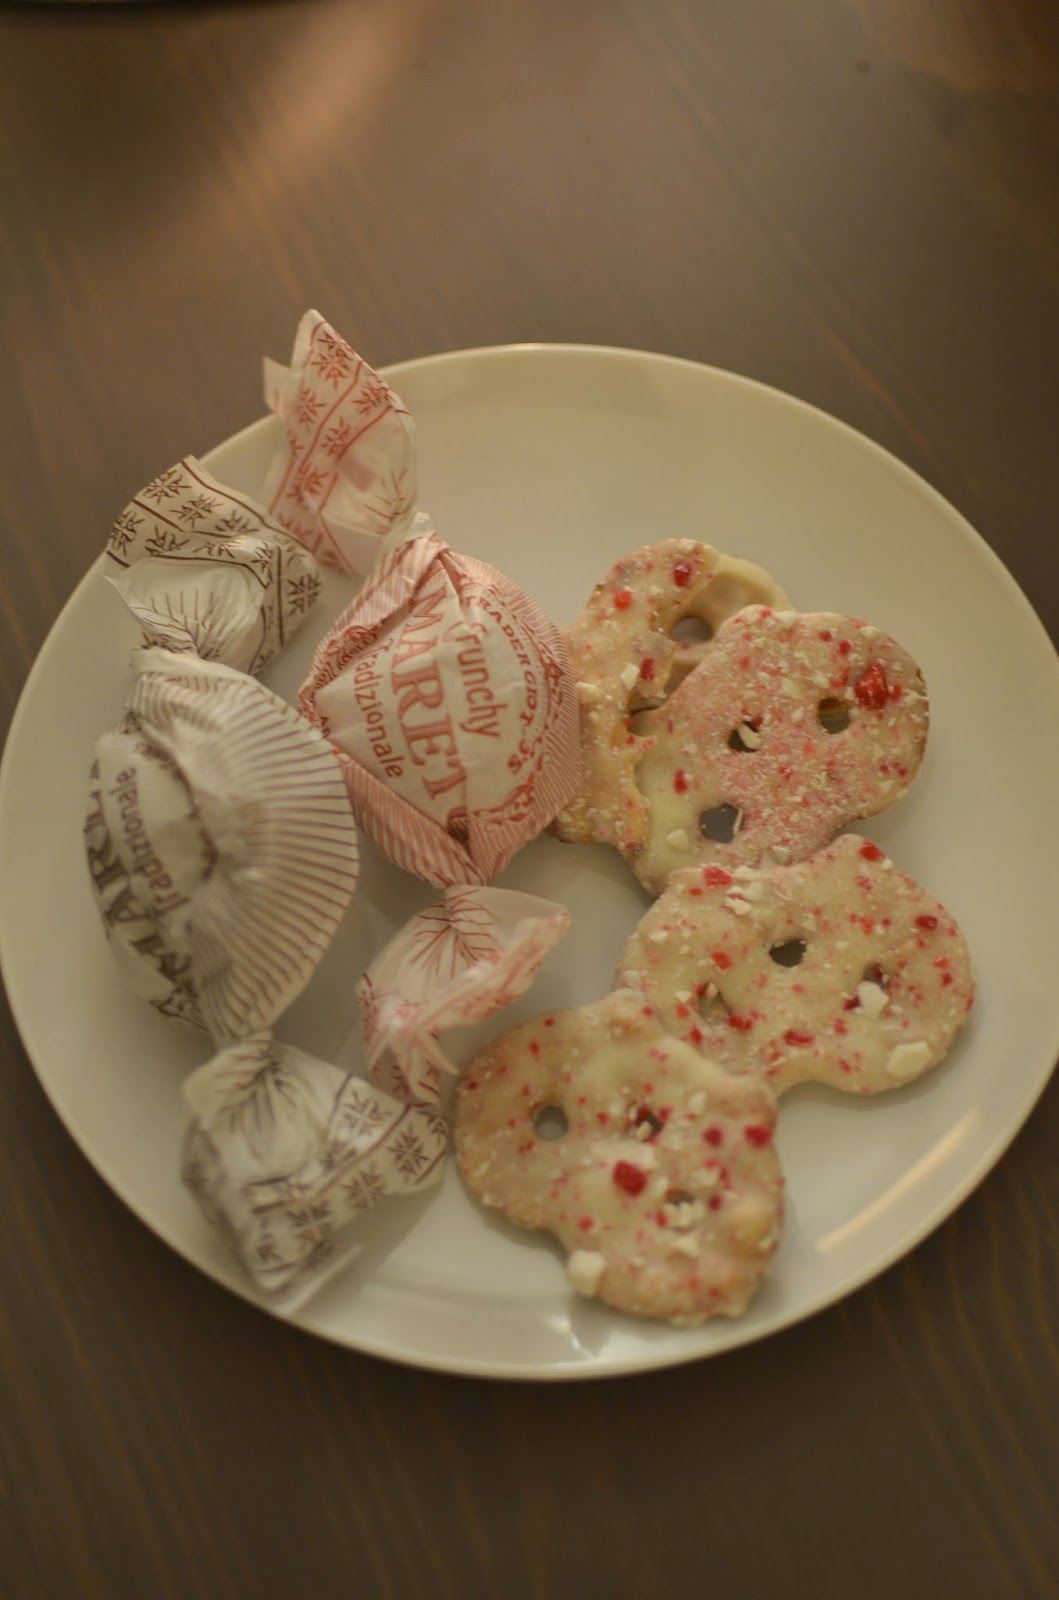 cookies for santa, cookies, sweets, holiday treats